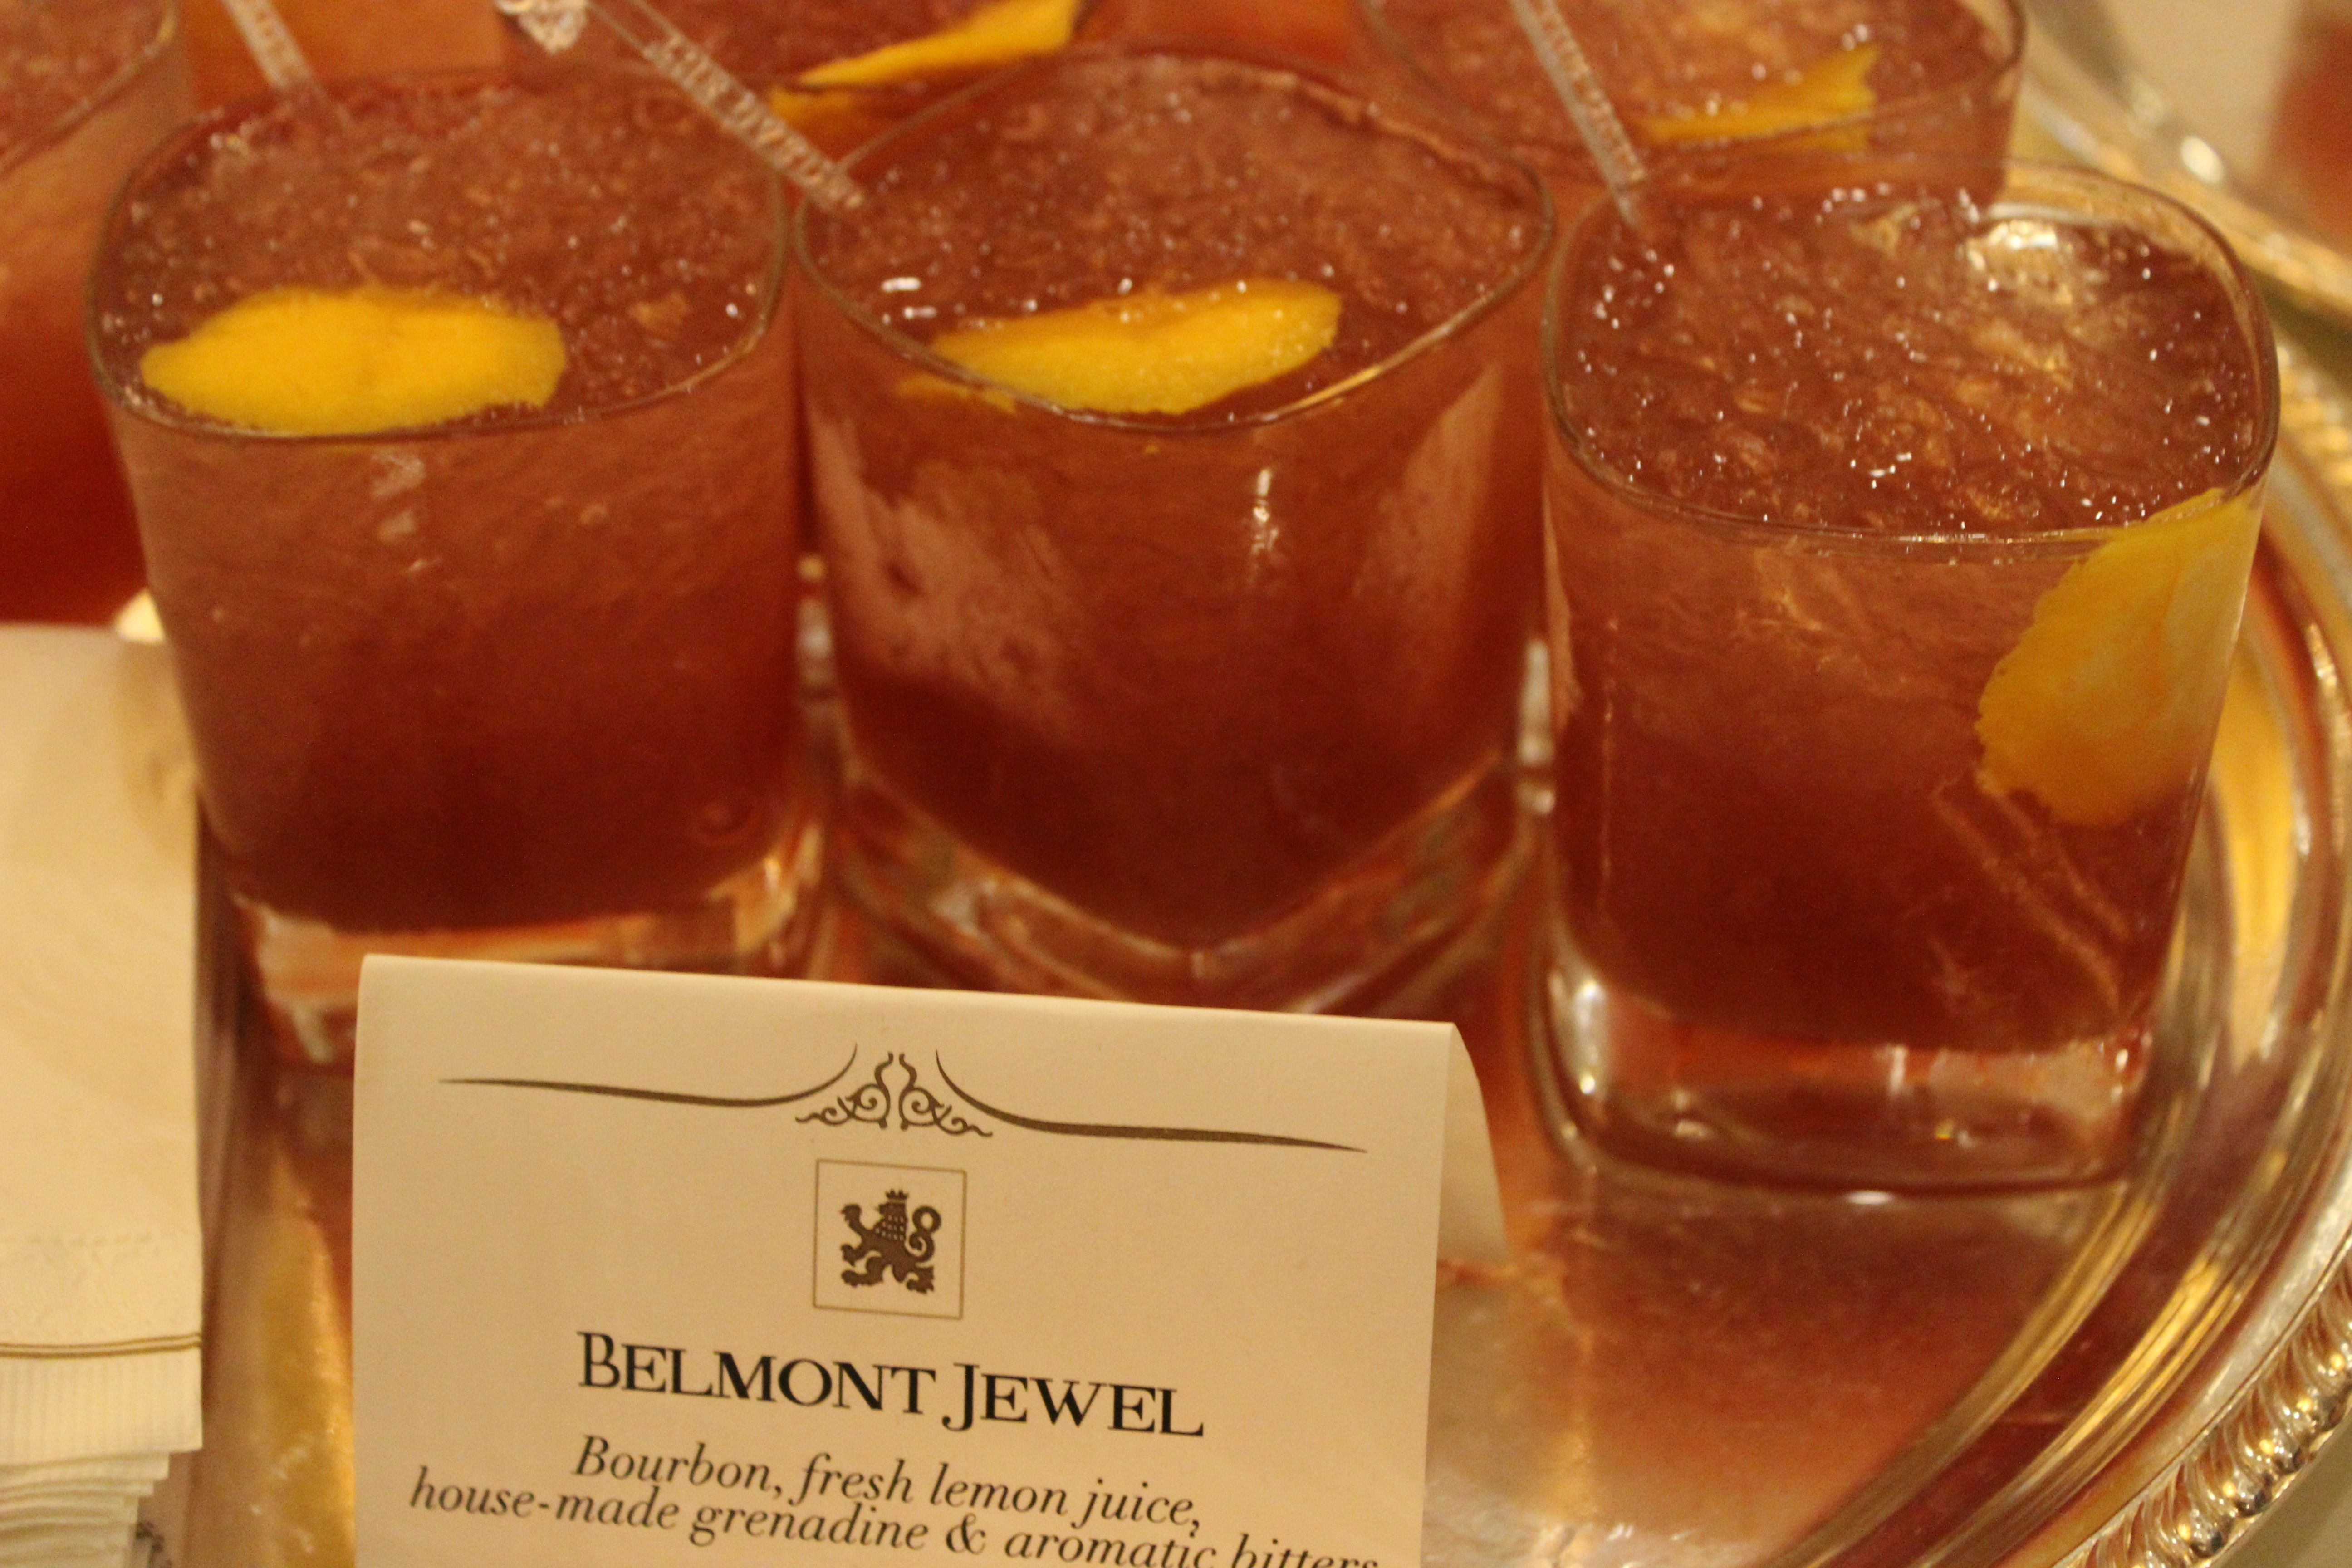 The Belmont Jewel Done Garden City Hotel Style Includes Bourbon